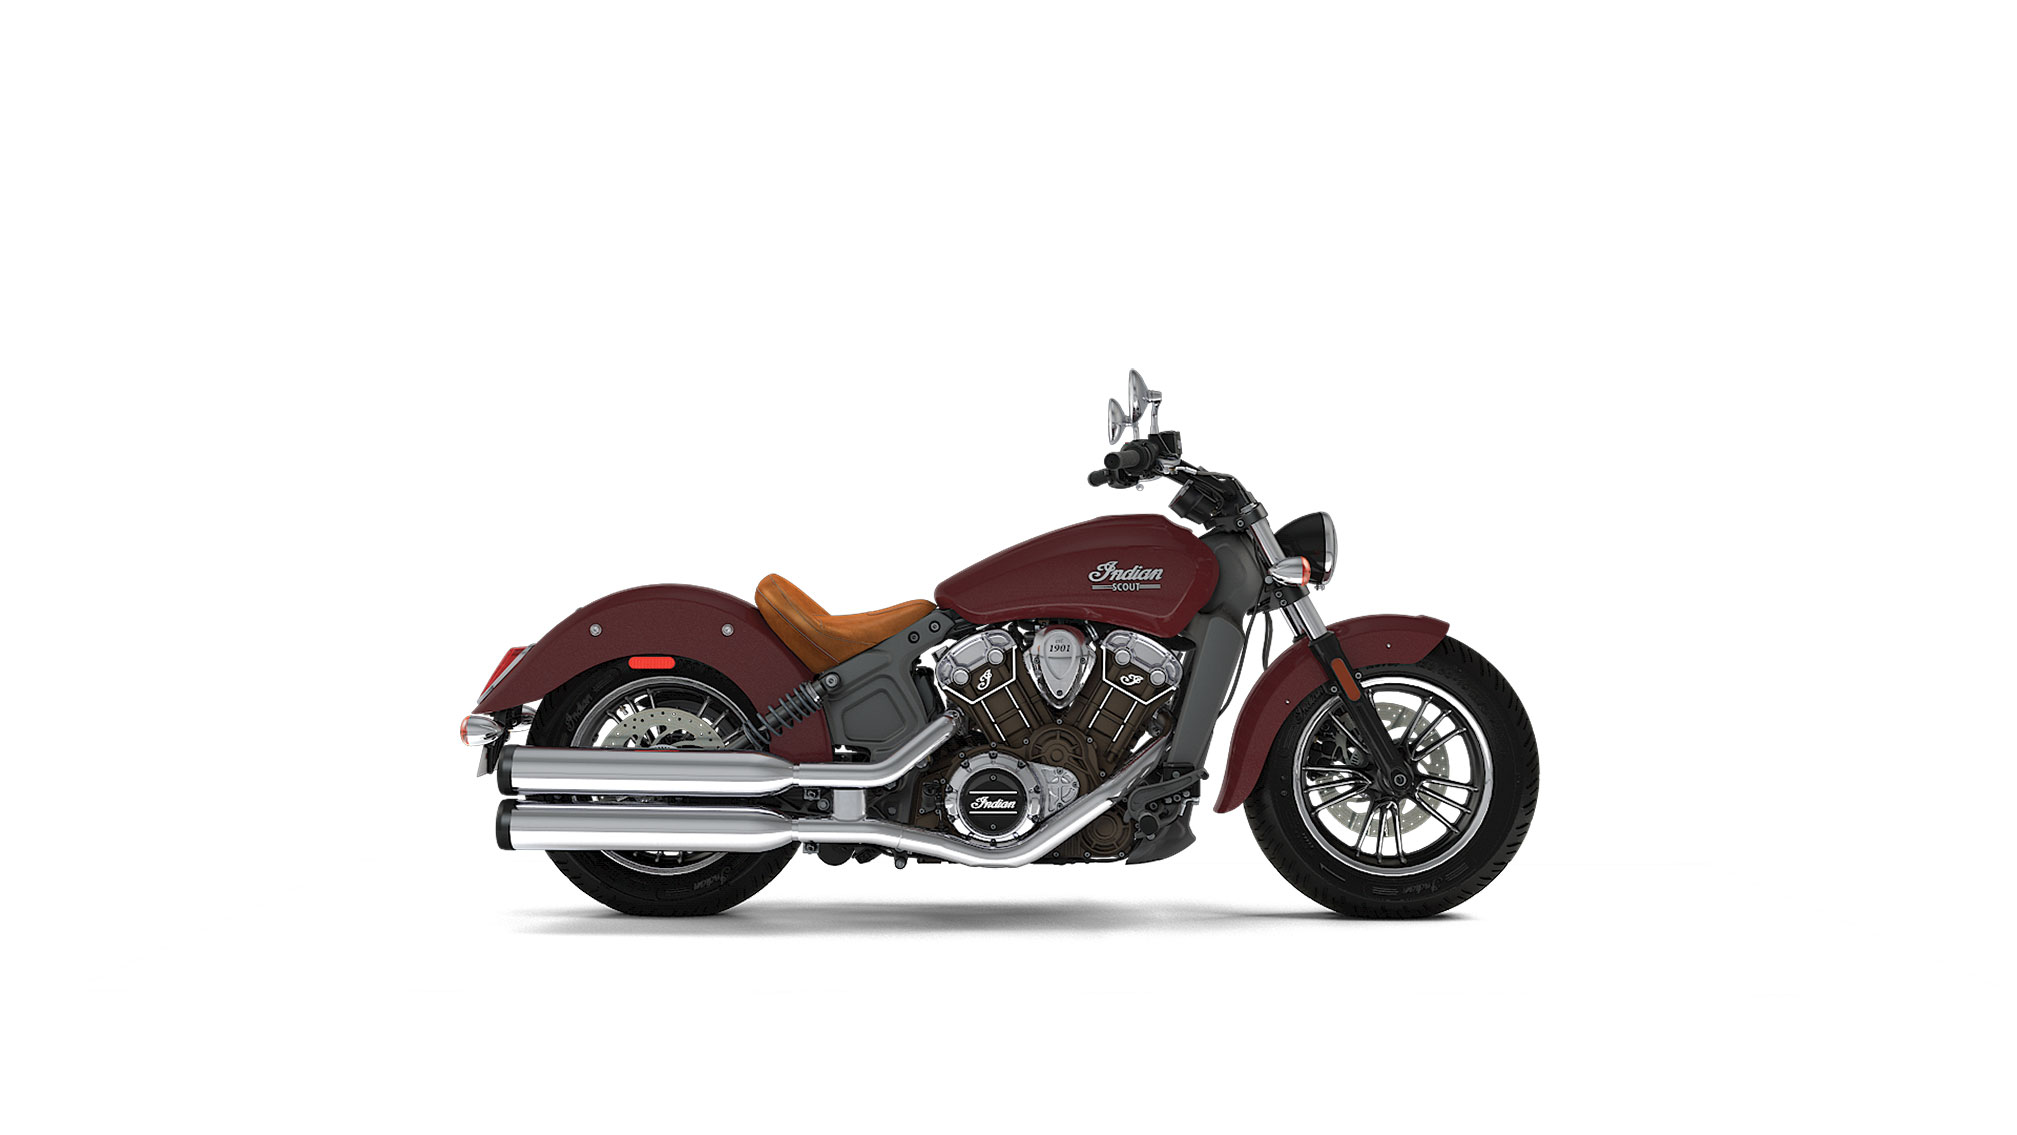 2017 Indian Scout Review